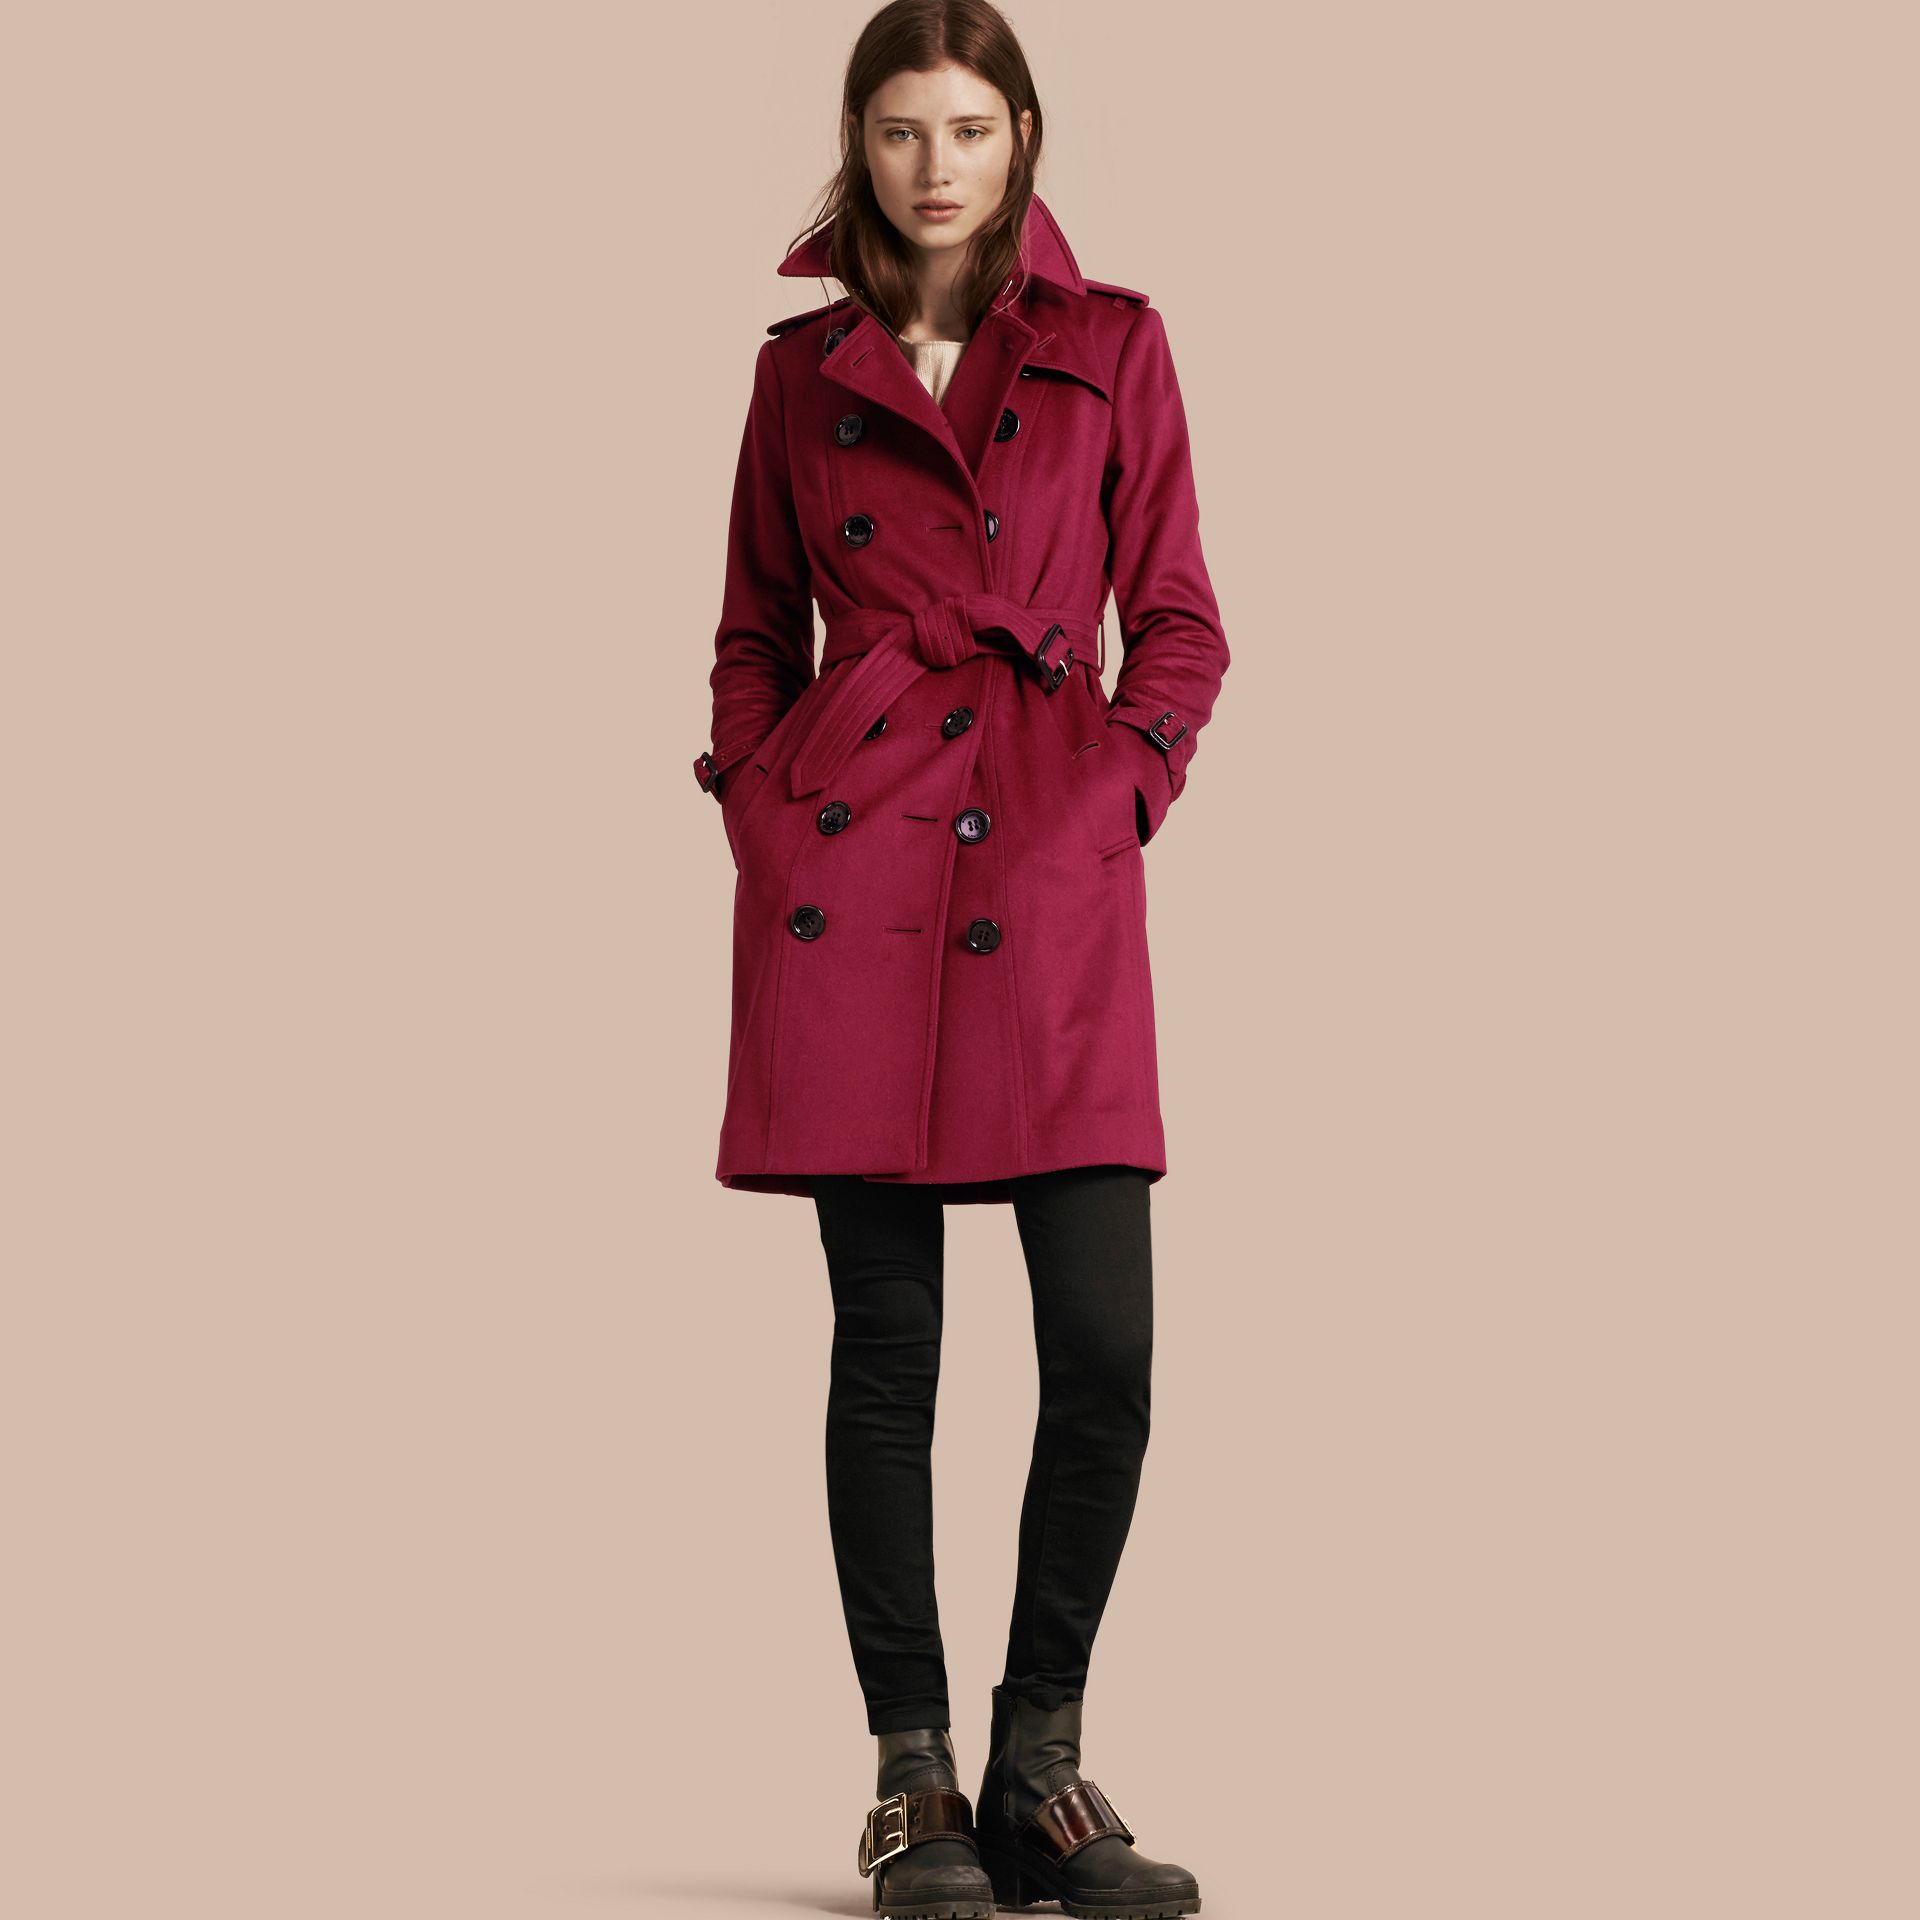 Rose cerise Trench-coat en cachemire de coupe Sandringham Rose Cerise - photo de la galerie 1